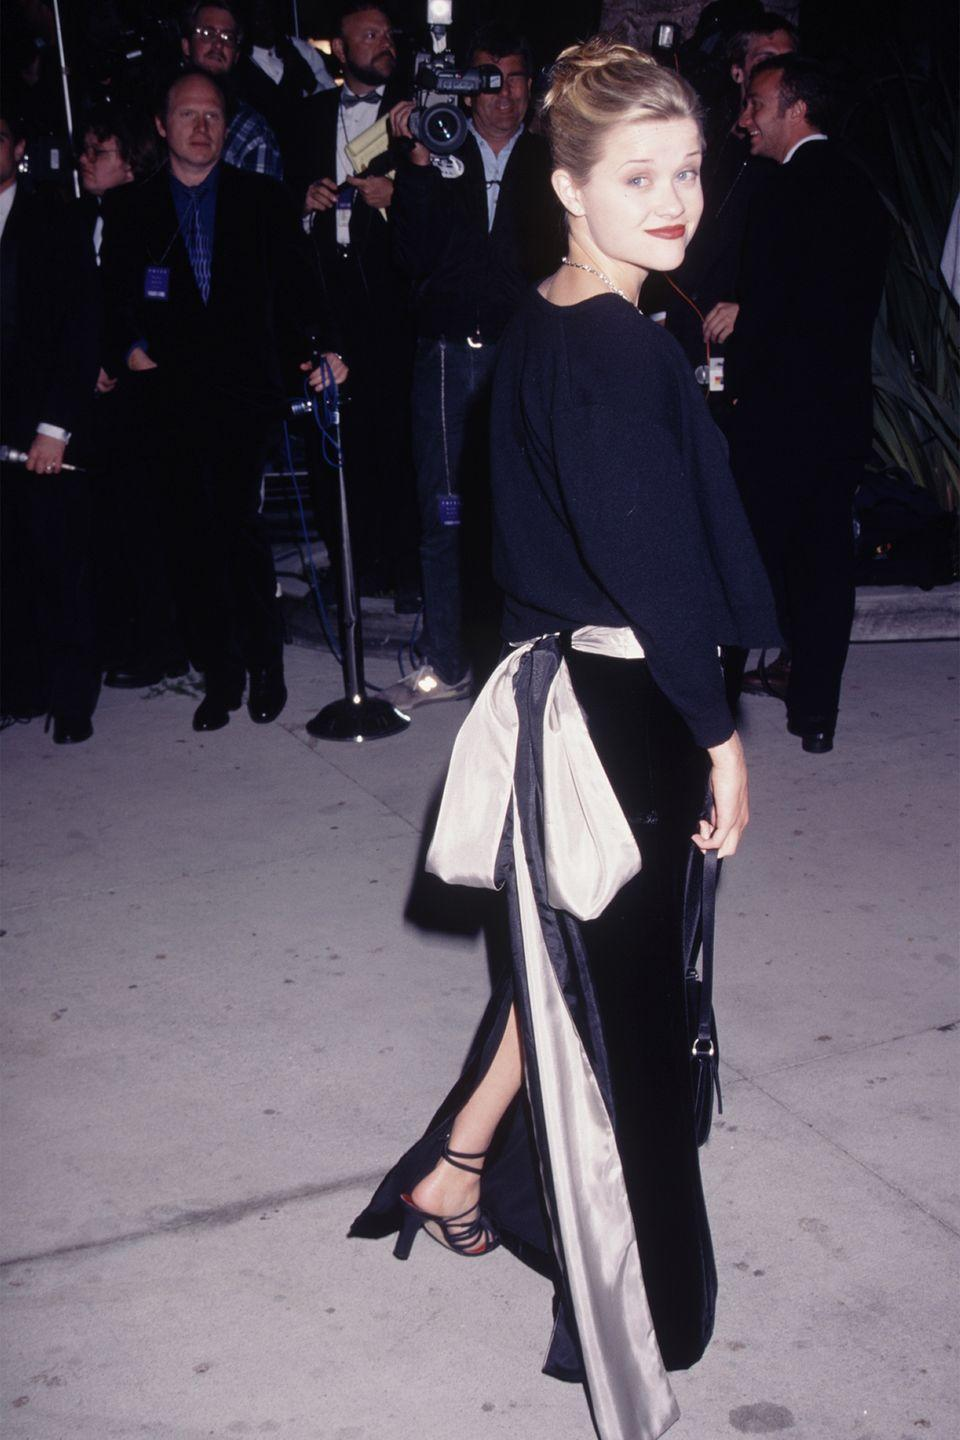 <p>Business in the front and a party in the back was the look for a Hollywood event. </p>